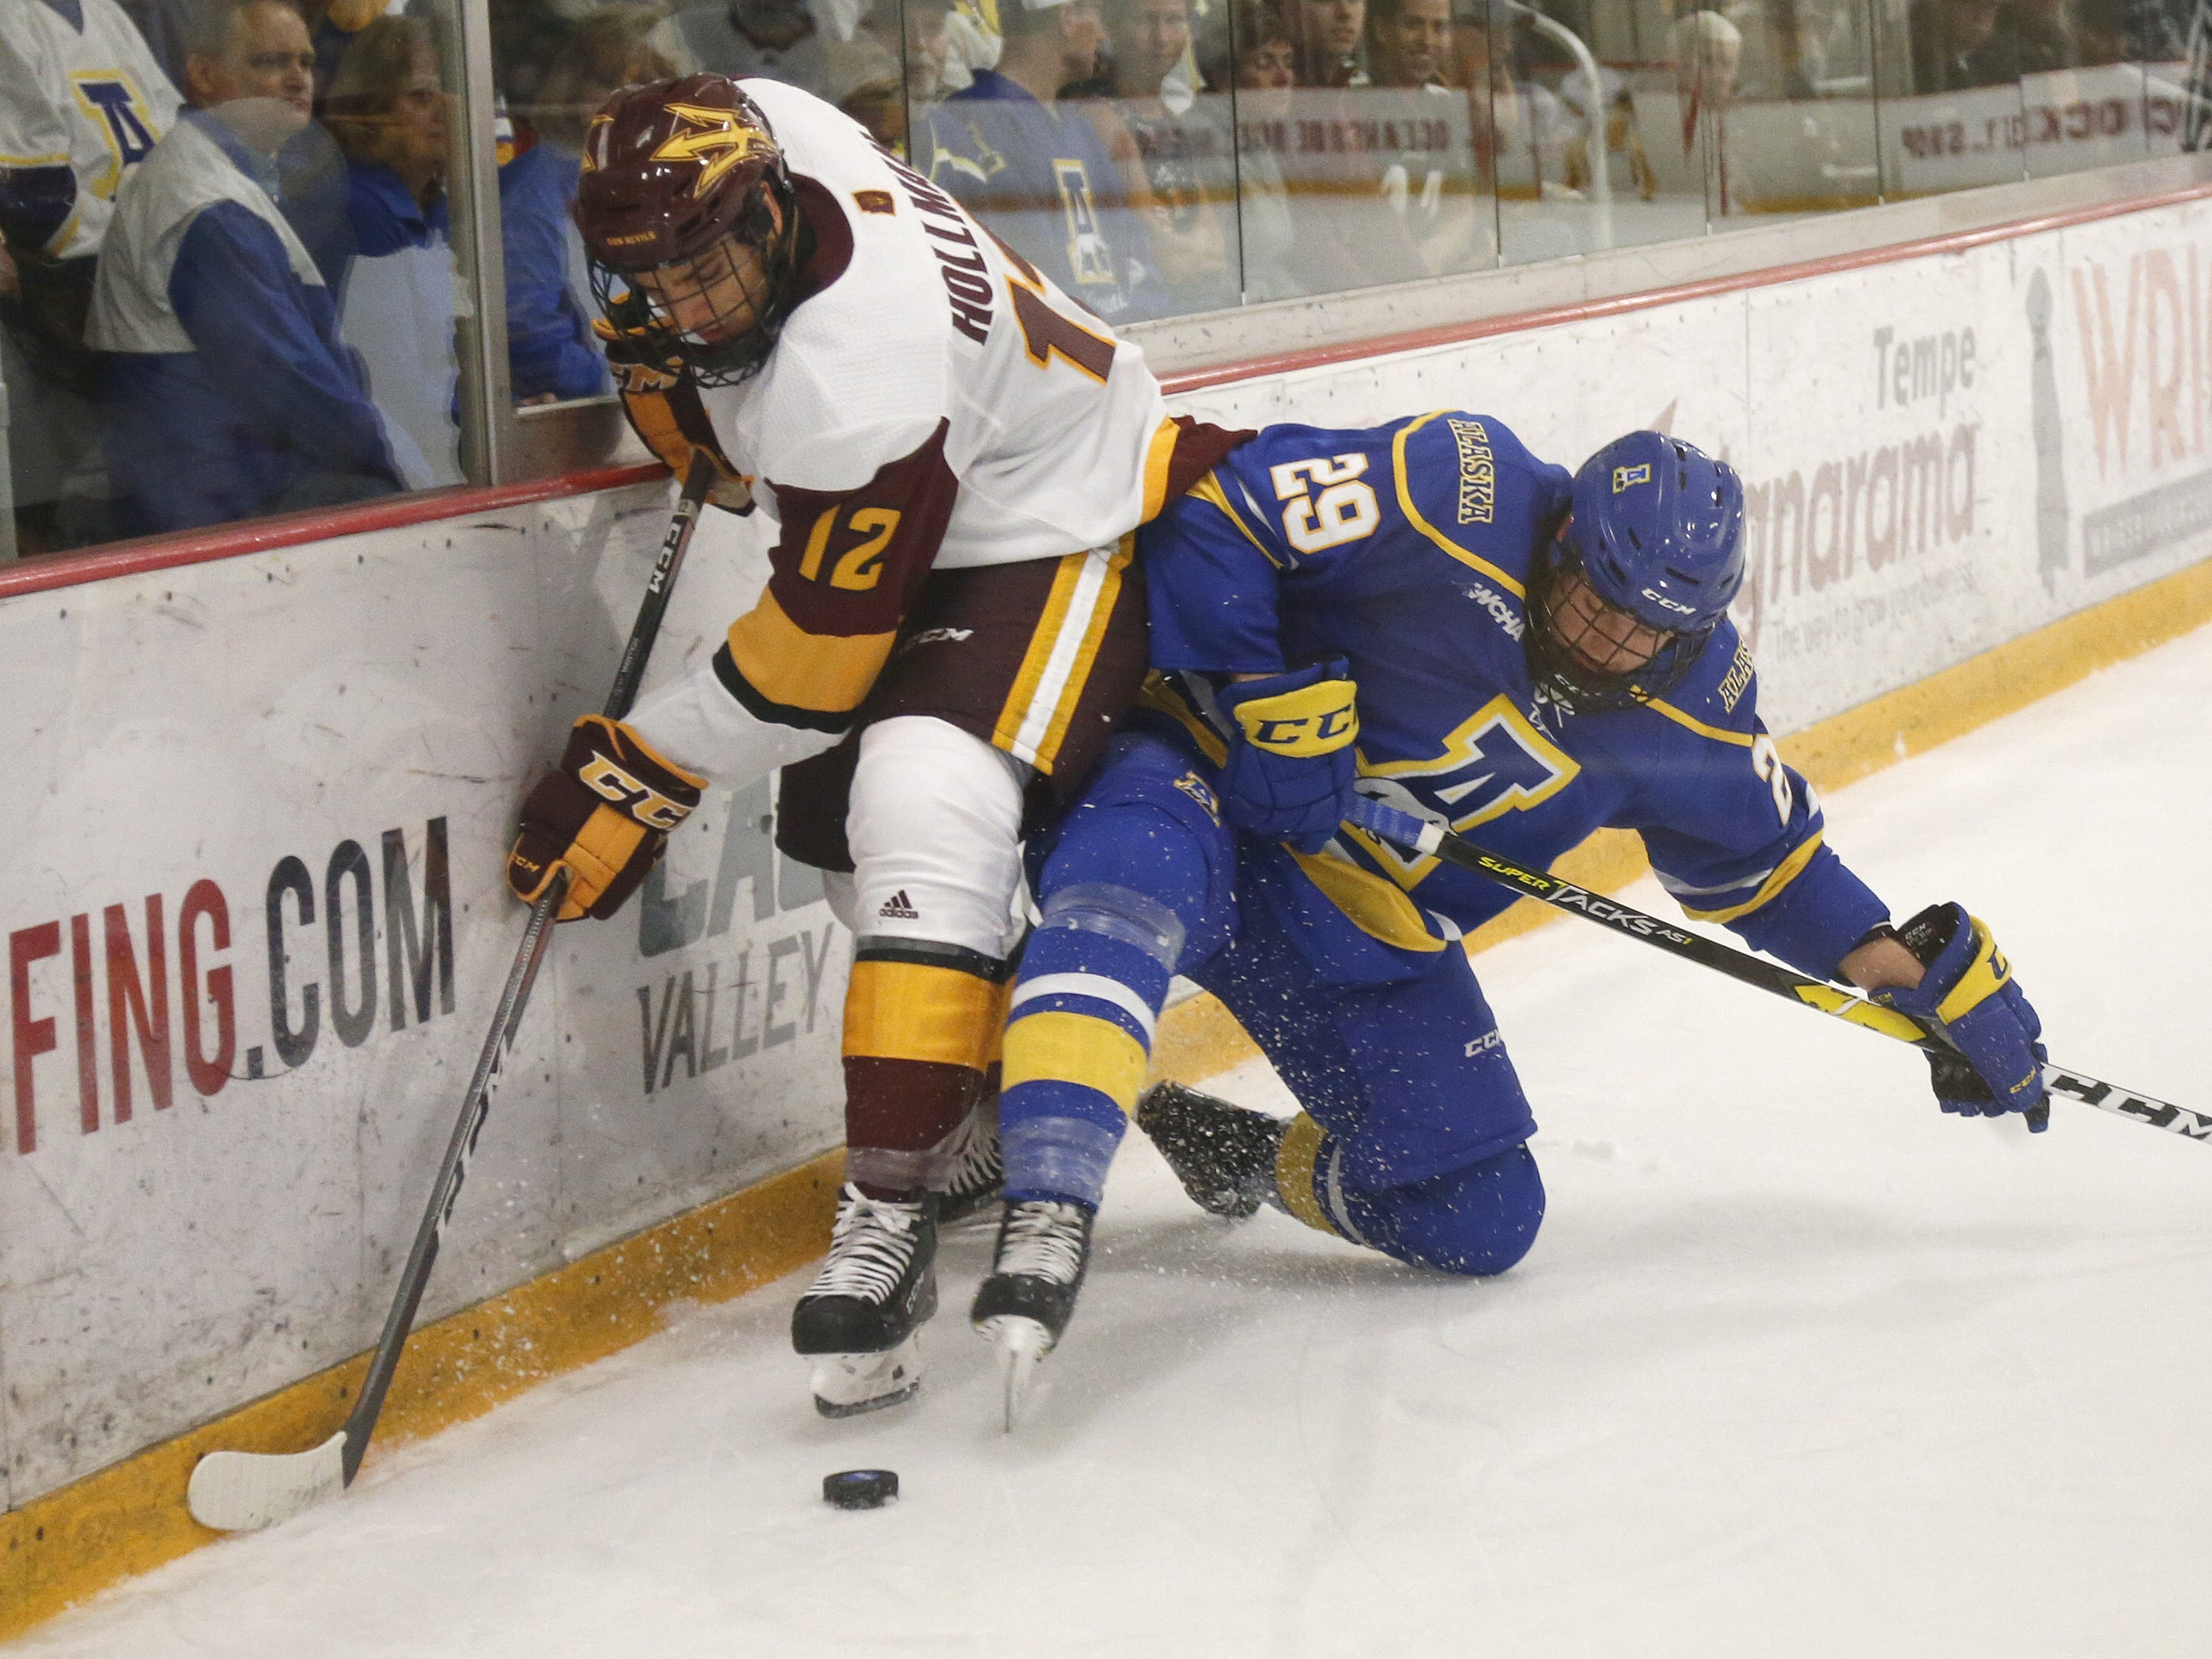 ASU's Dylan Hollman (12) tries to win a puck against Alaska's Chris Jandric (29) at Oceanside Ice Arena in Tempe, Ariz. on October 7, 2018.